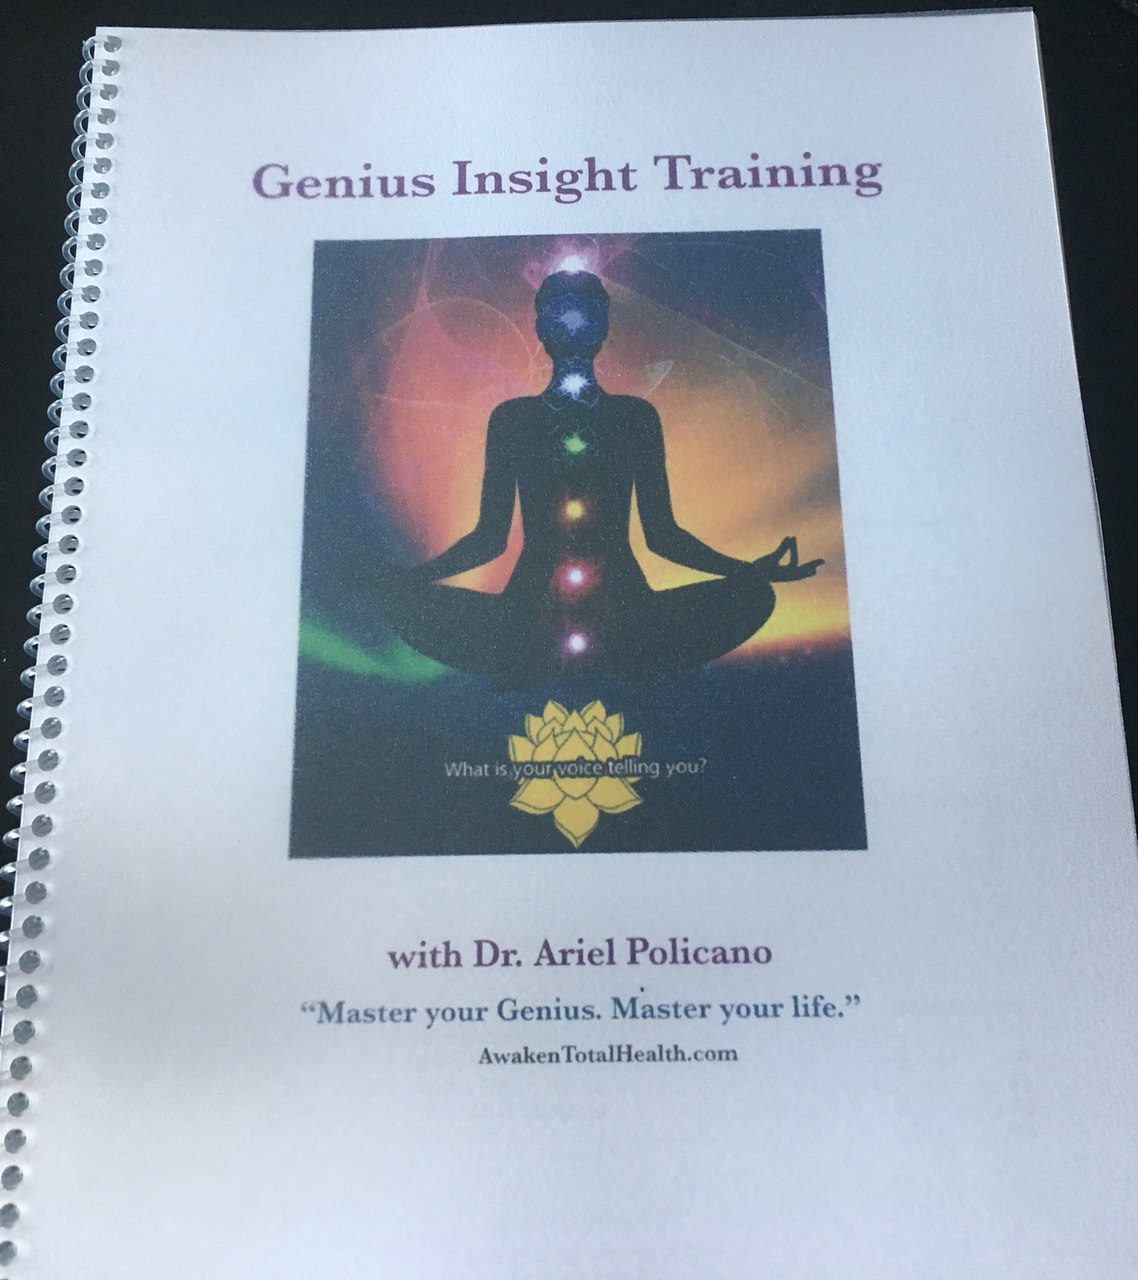 Download the Mastery Guide - Understand how and why the Genius works. Have access to the meaning behind each of the screens. Includes explanation of Nogier frequencies and Meridians.